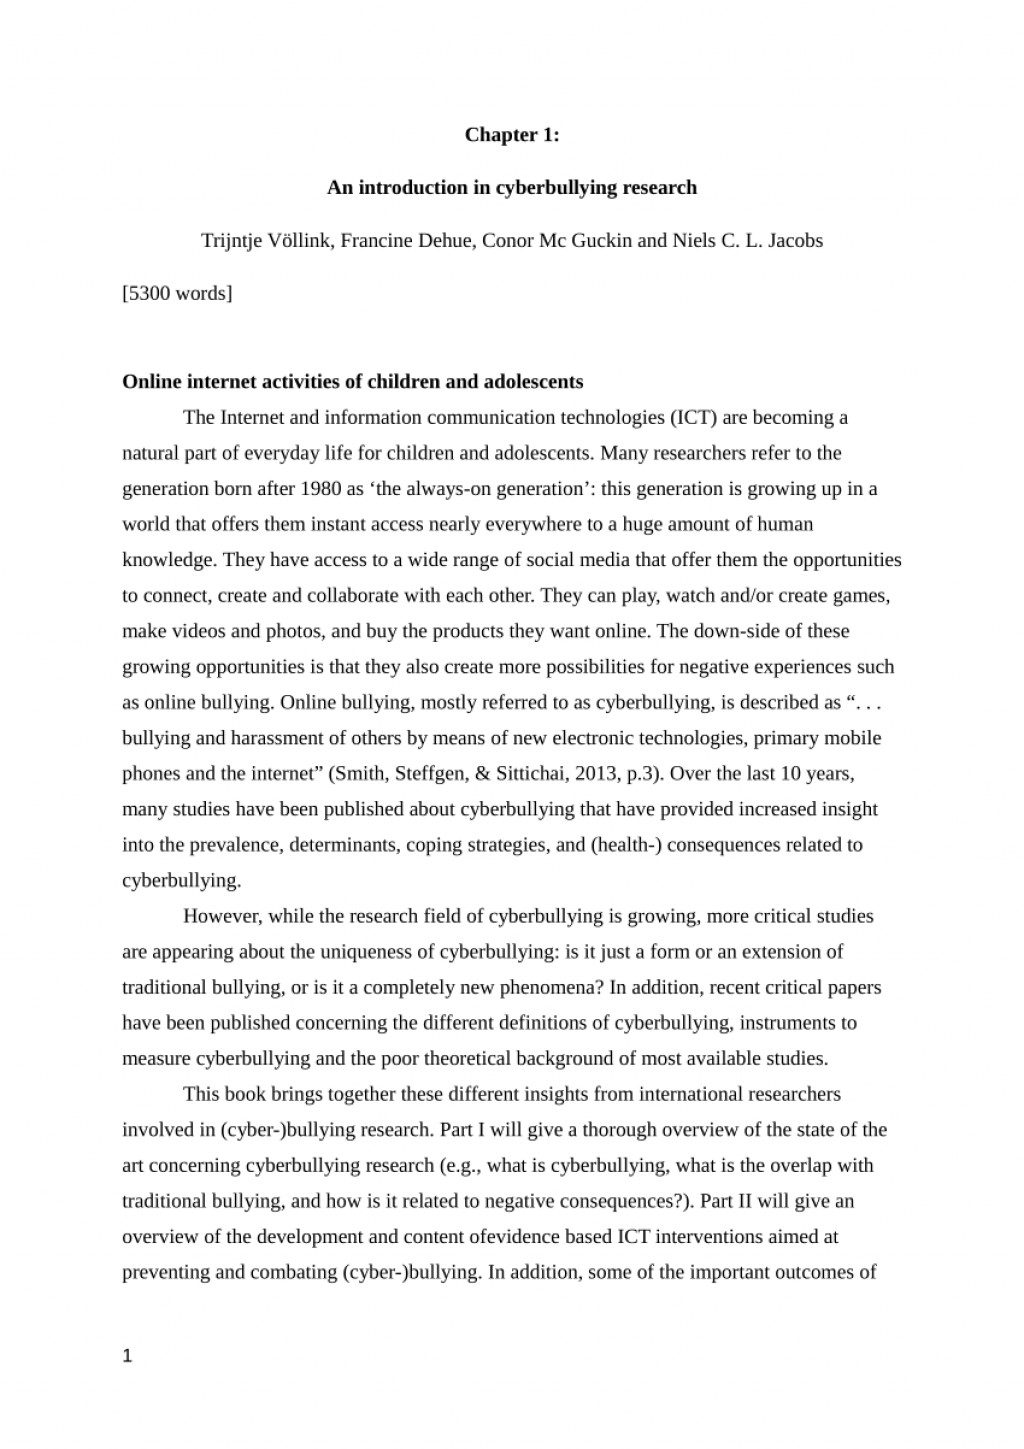 001 Research Paper On Cyber Bullying Stirring Cyberbullying Titles Outline Large